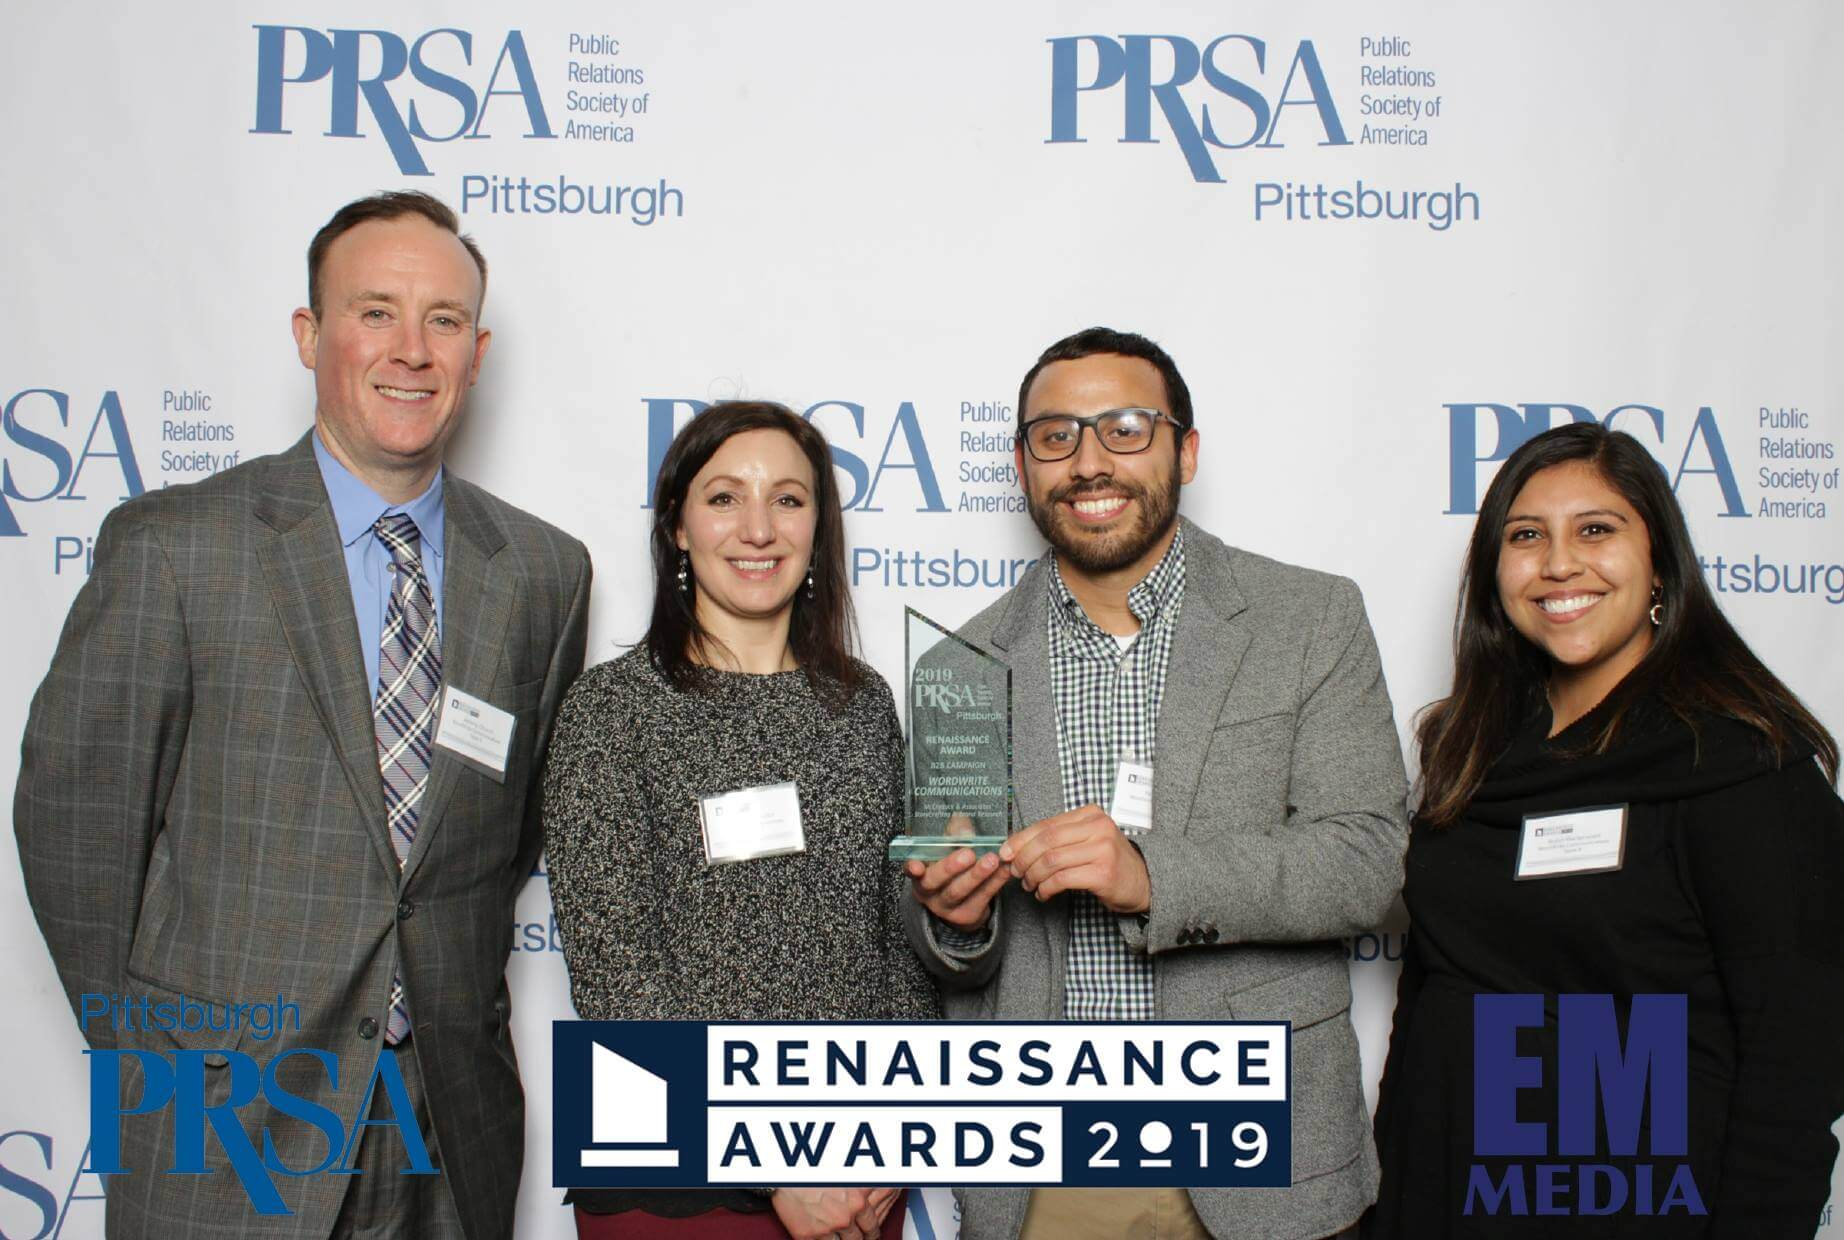 WordWrite staff with 2019 Renaissance Award